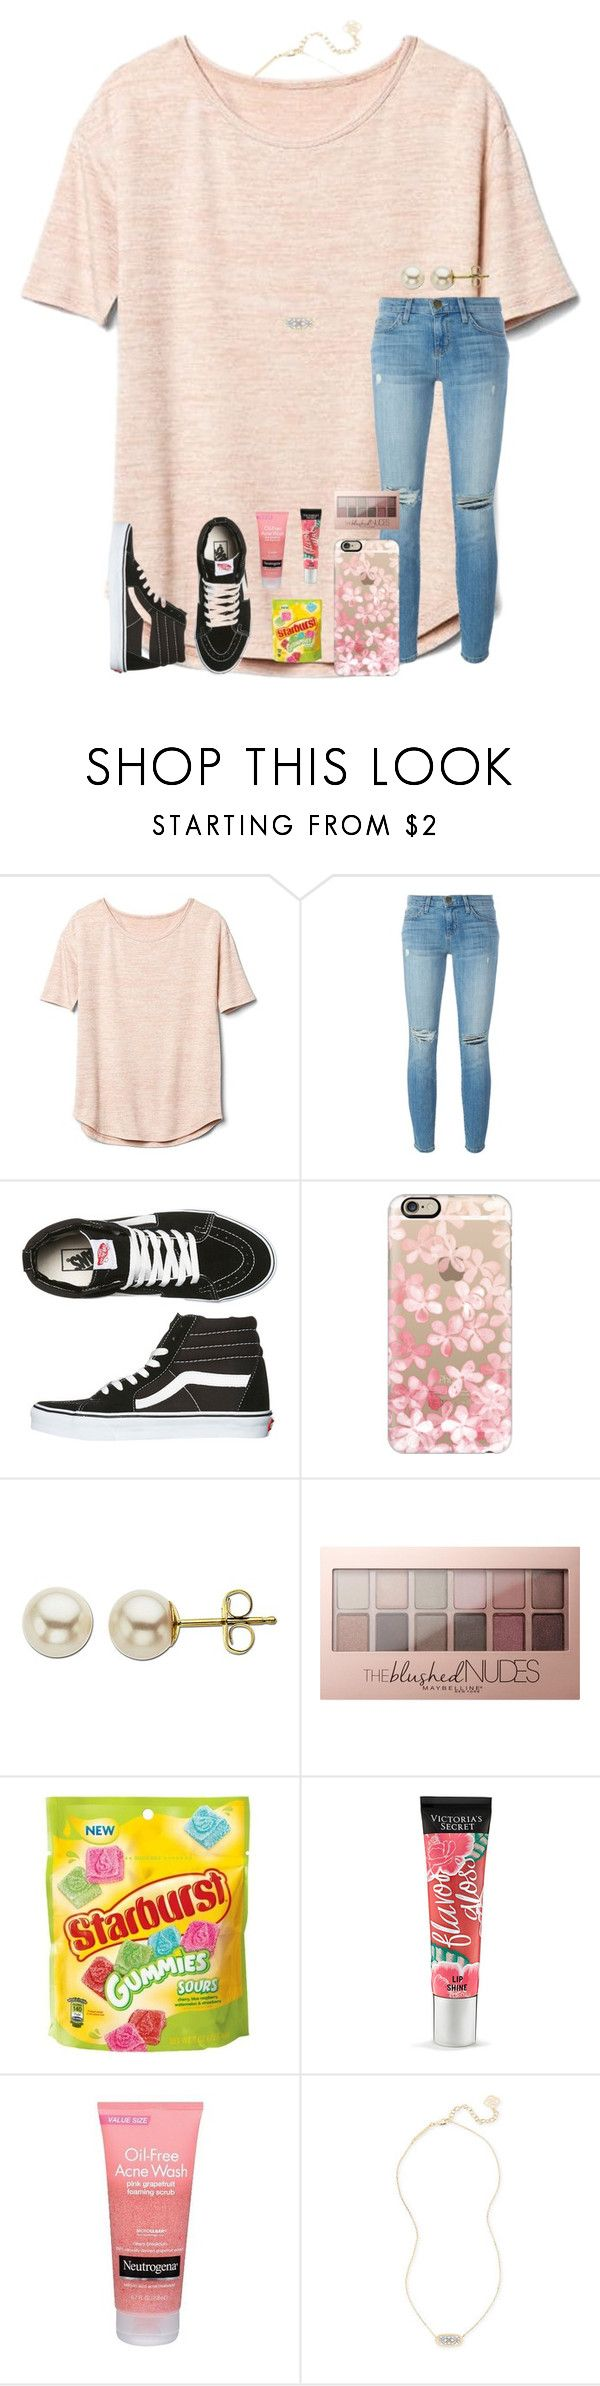 """How bout dah?? Makes me laugh all the time "" by kari-luvs-u-2 ❤ liked on Polyvore featuring Gap, Current/Elliott, Vans, Casetify, Lord & Taylor, Maybelline, Beauty Rush, Neutrogena and Kendra Scott"